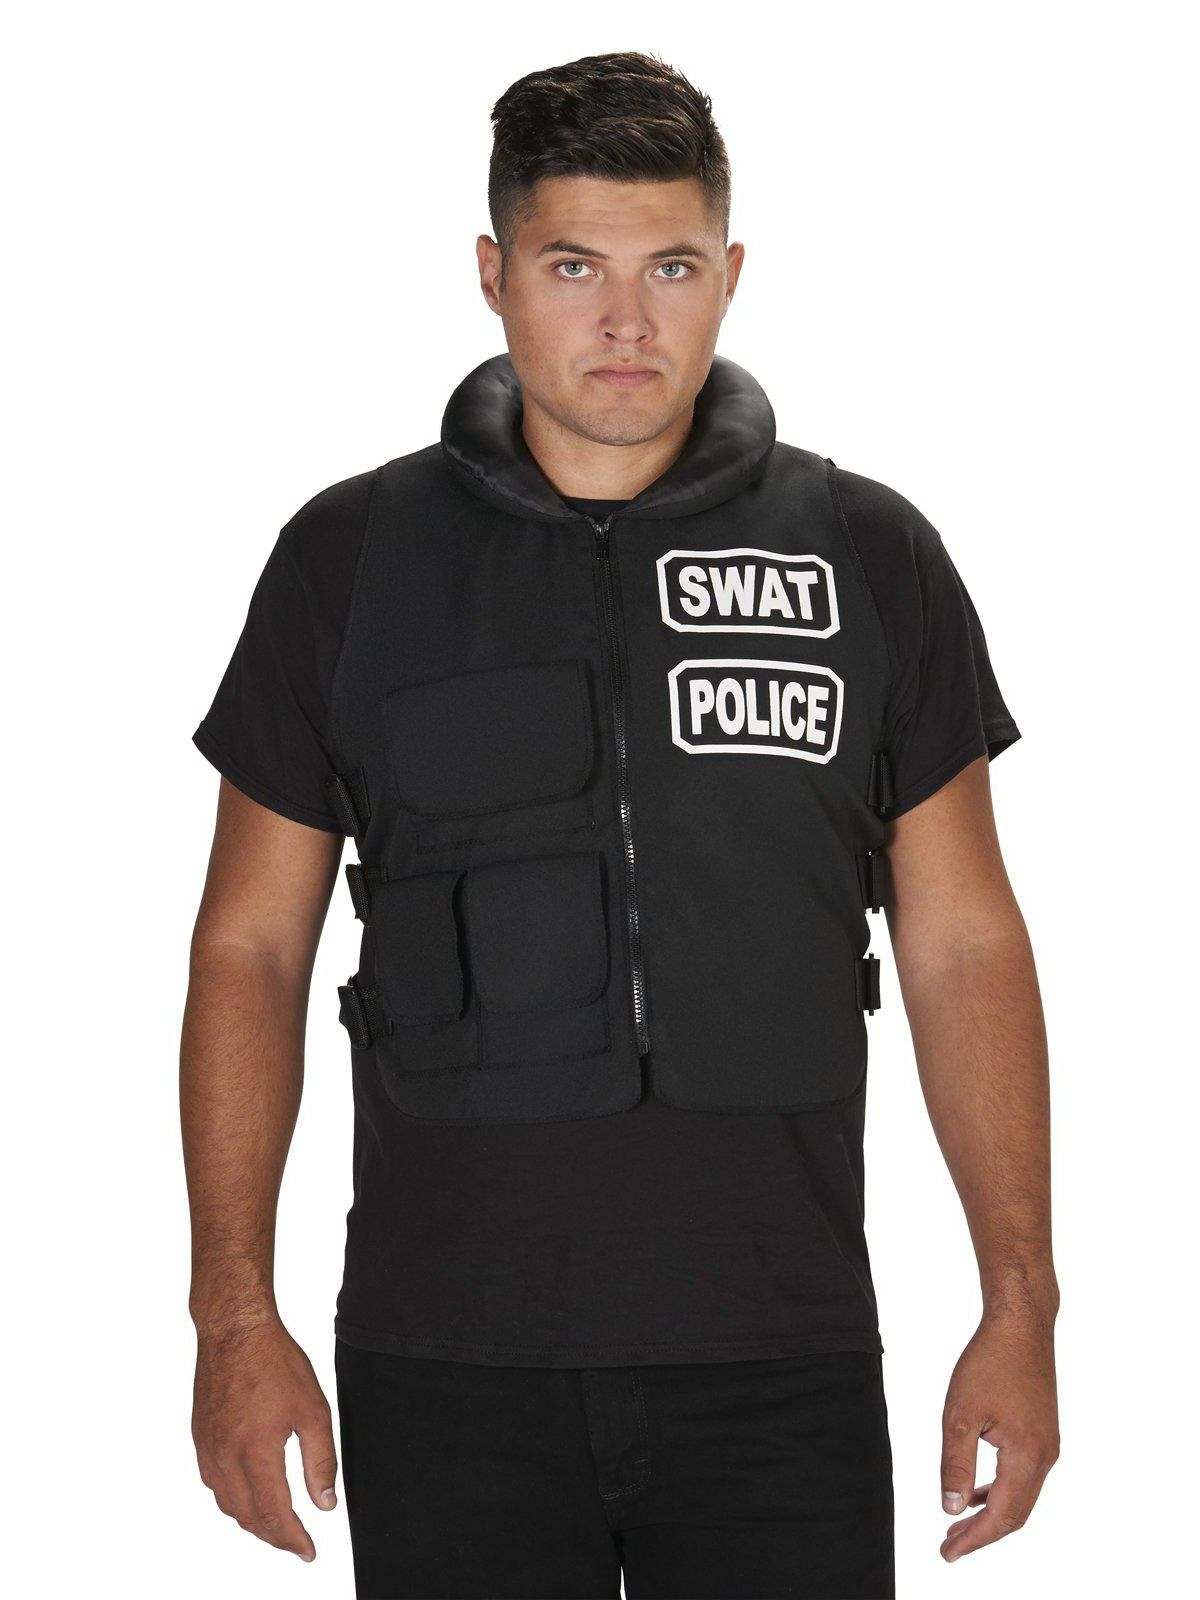 SWAT Team Vest Costume One Size For Adults  sc 1 st  Wholesale Halloween Costumes : vest costumes  - Germanpascual.Com